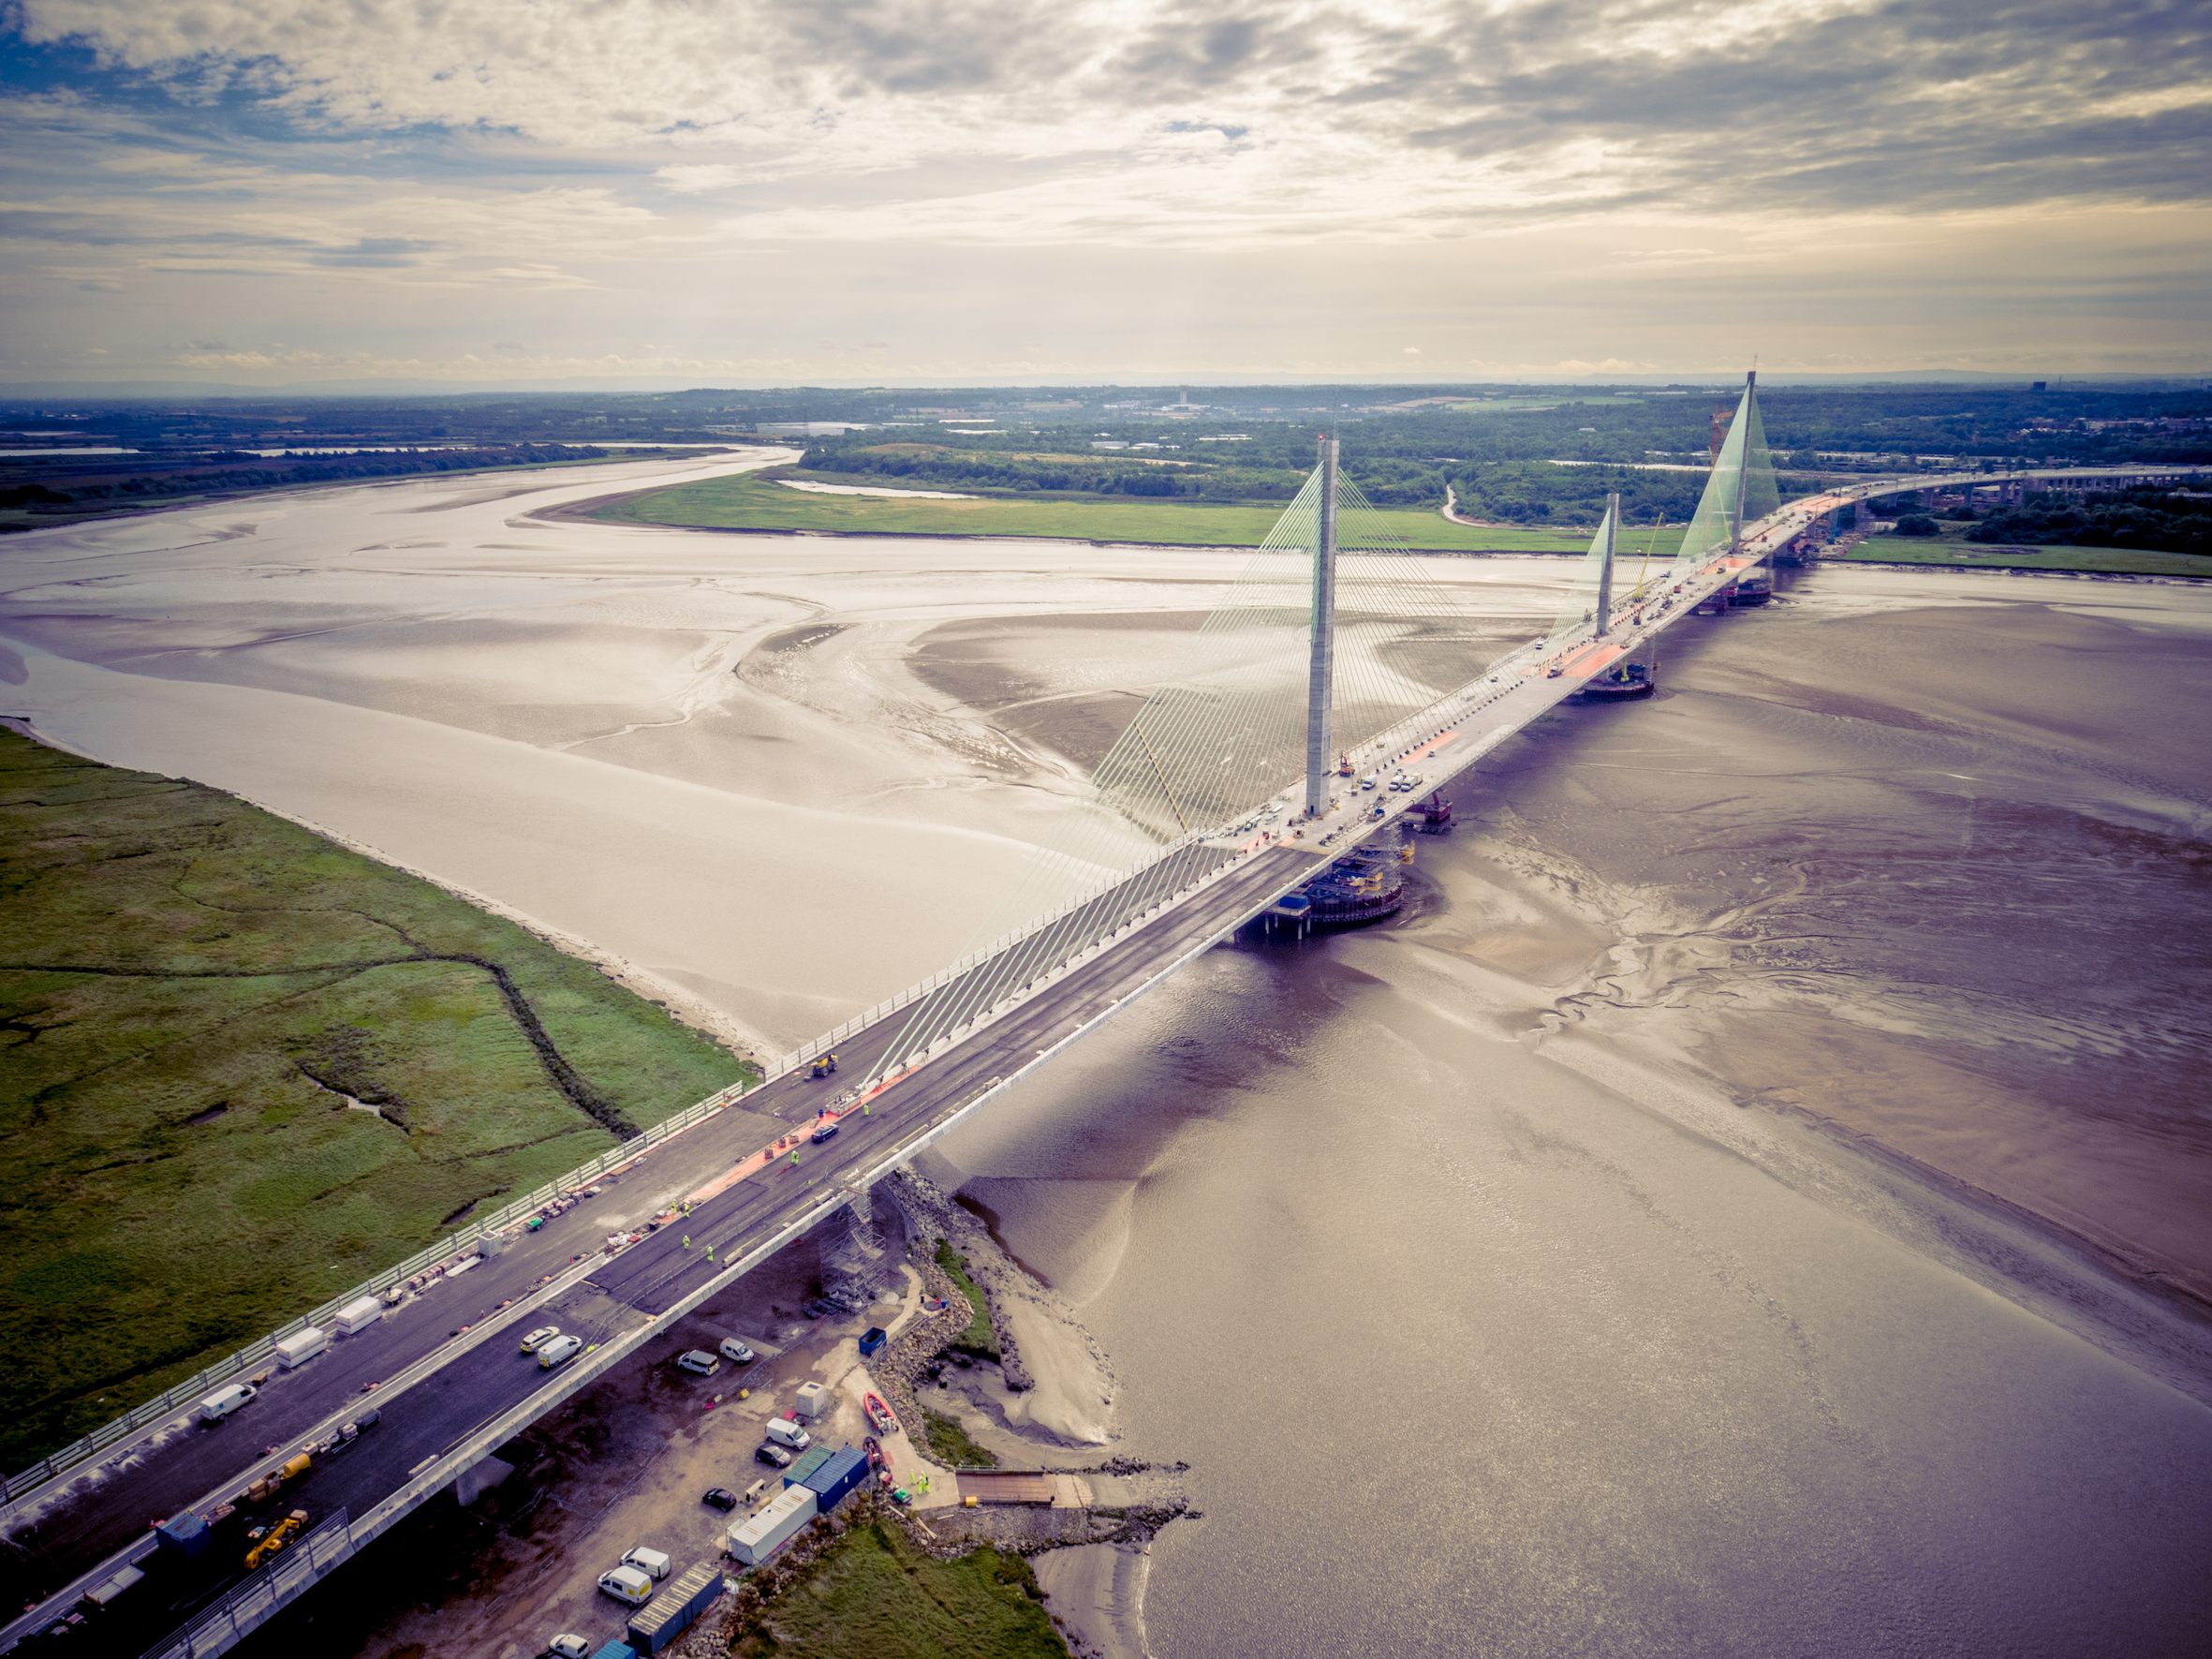 Halton Council says drivers must continue to pay tolls on the Mersey Gateway bridge or risk getting a Penalty Charge Notice